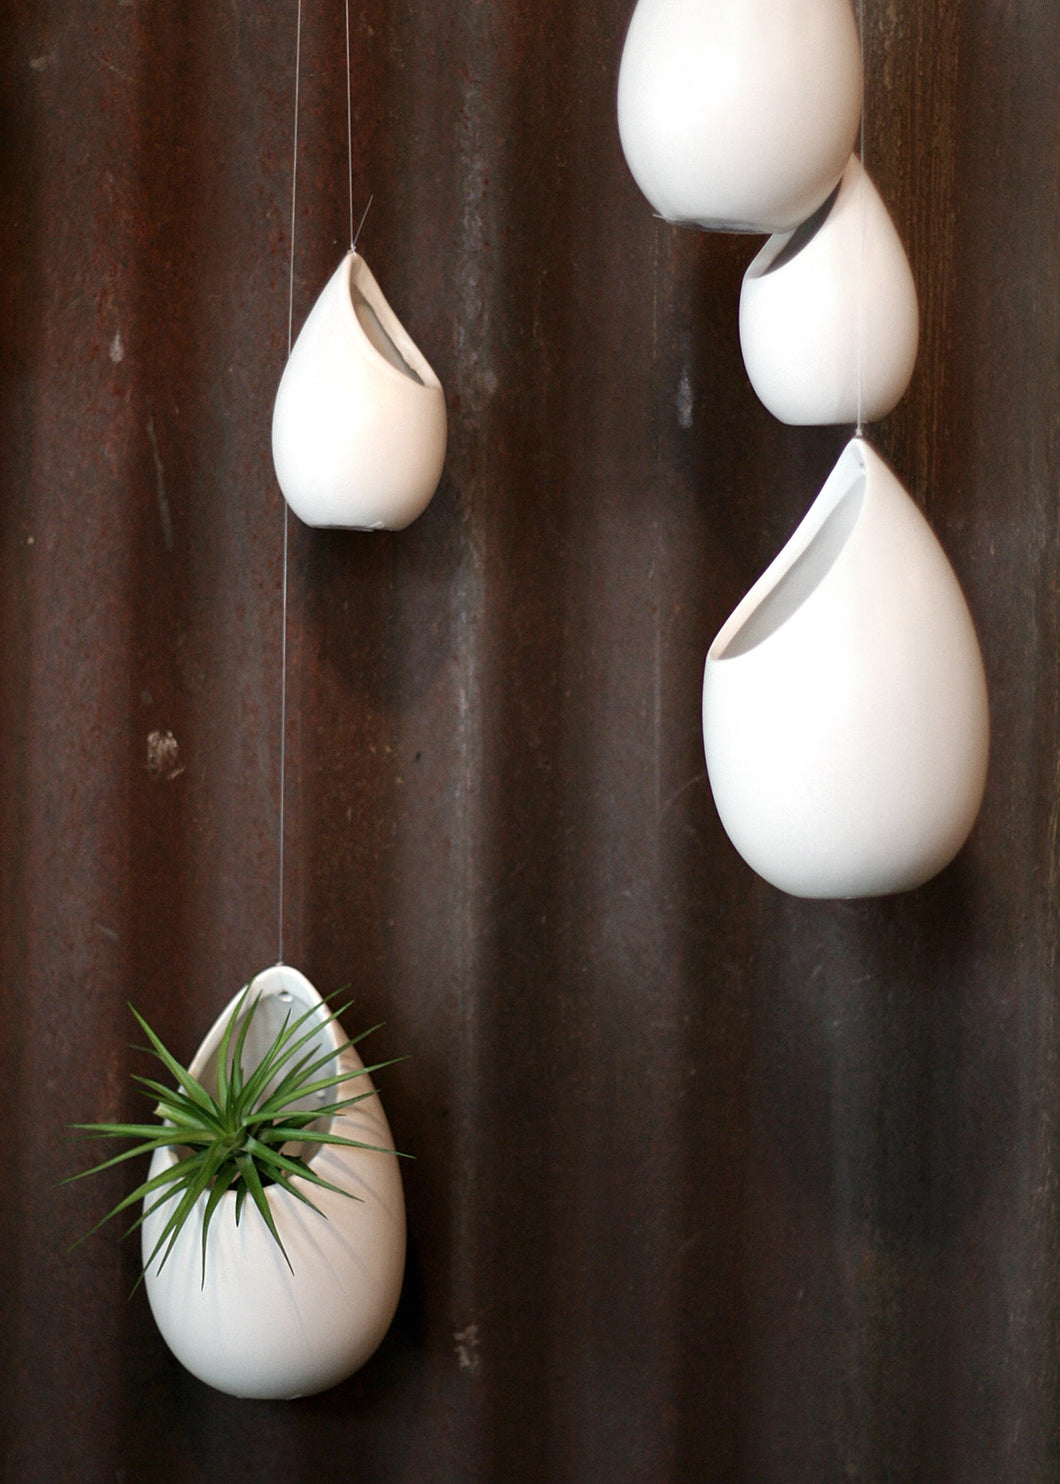 Large Ceramic Modern White Hanging Planter Digs Inside Out Home